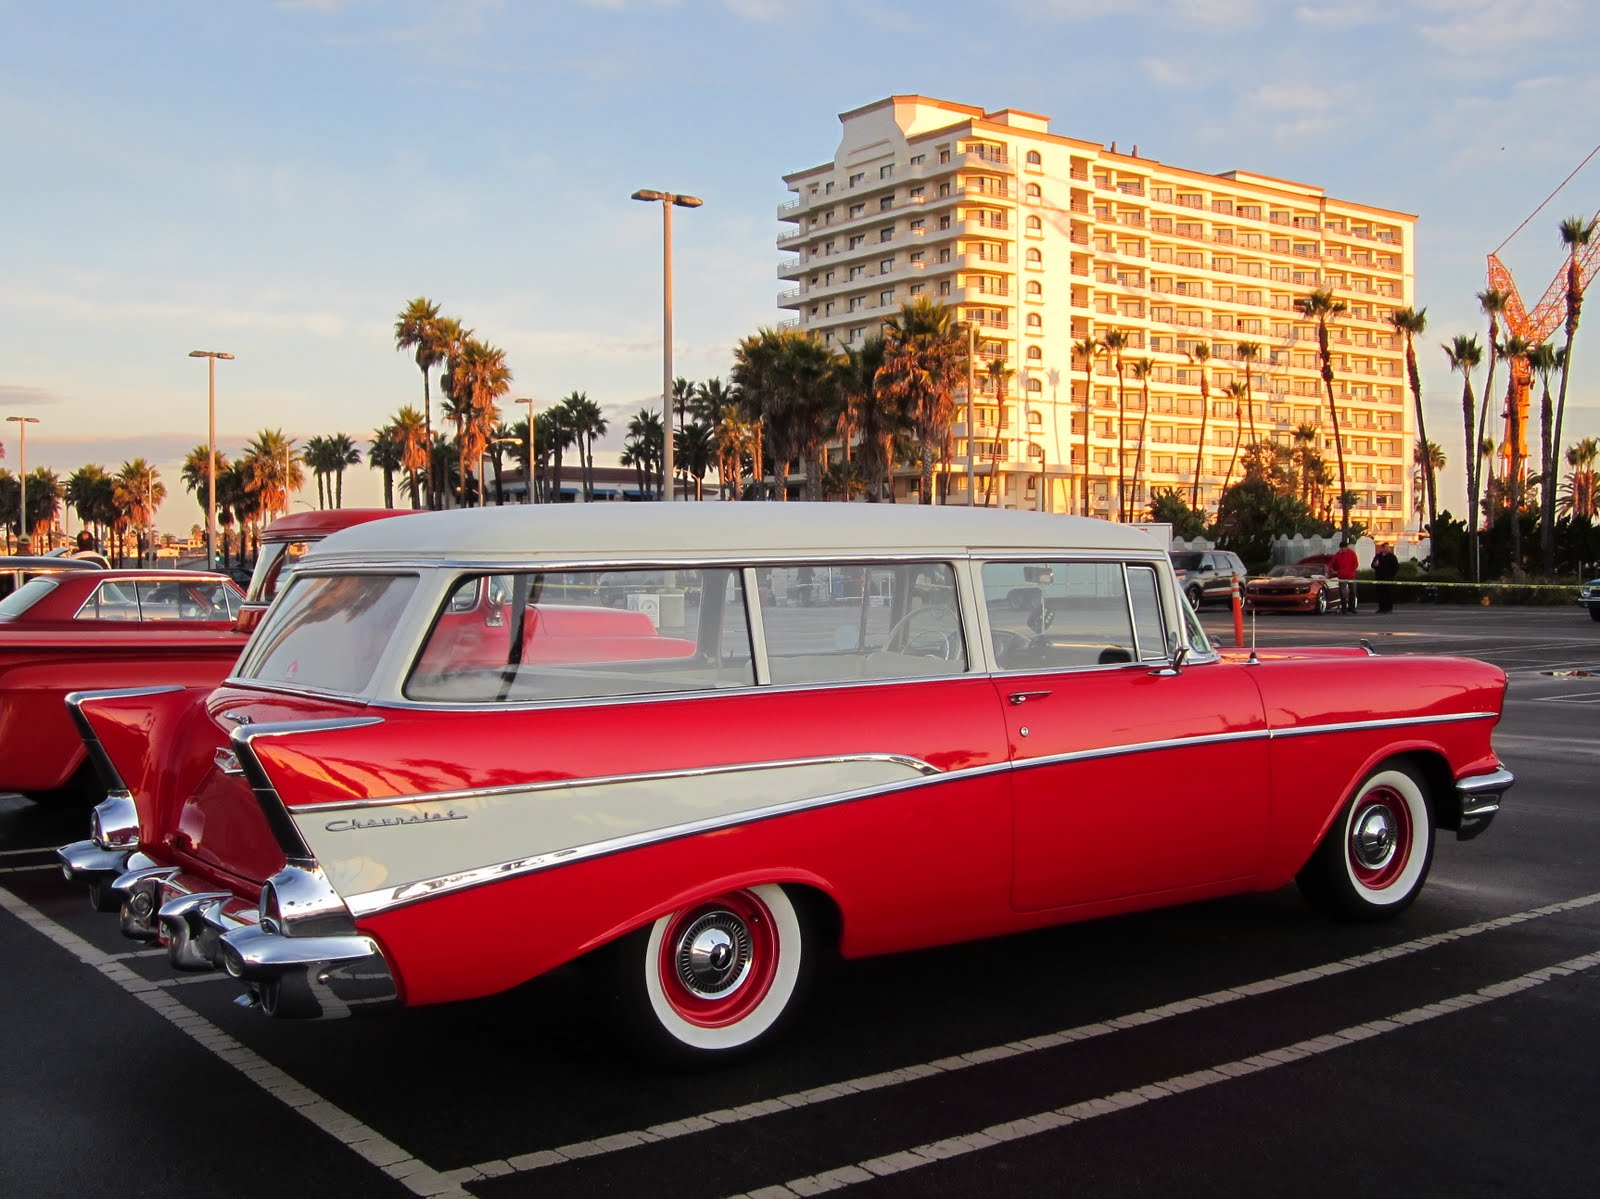 Covering Classic Cars : Surf City USA Car Show in Huntington Beach